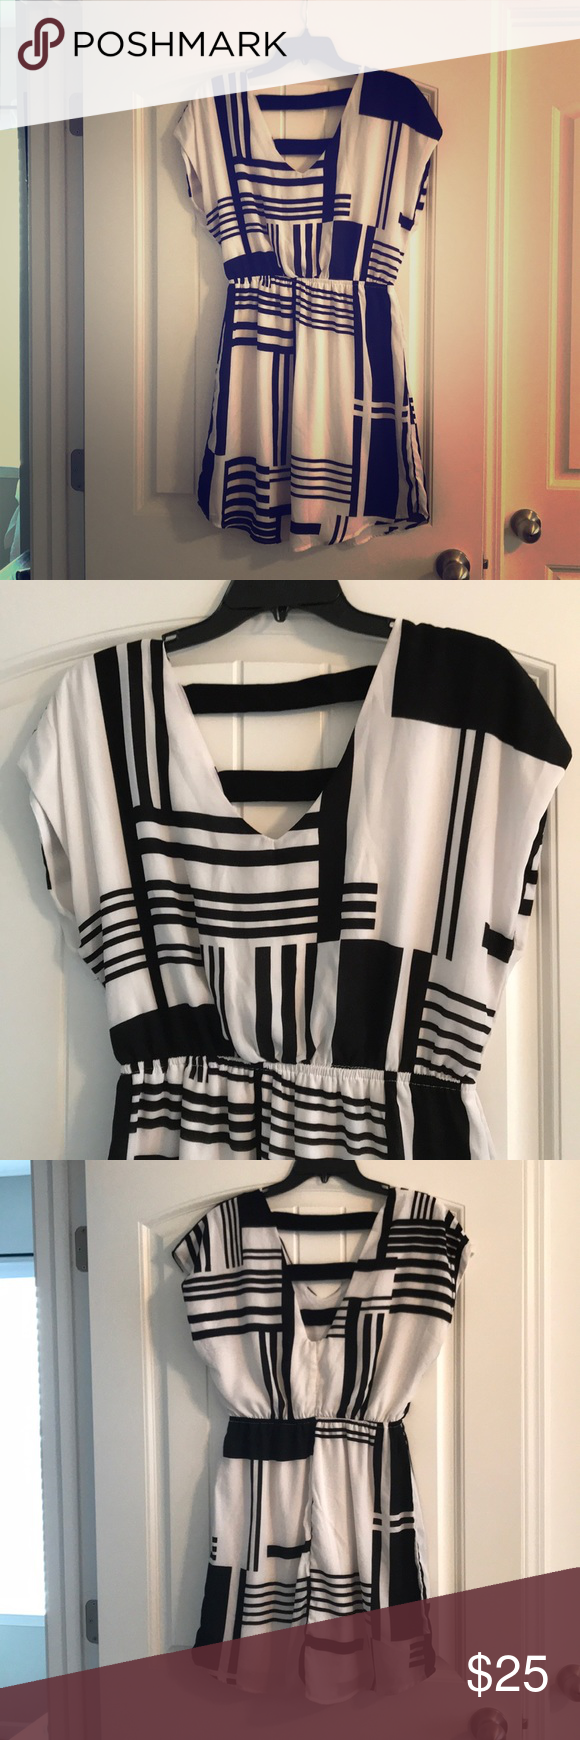 Black and white summer dress Very cute black and white summer dress, practically new, very soft, v-neck white a white slip attached underneath. Could be worn to a cocktail party or dress it down with a sun hat! Eyeshadow Dresses Mini